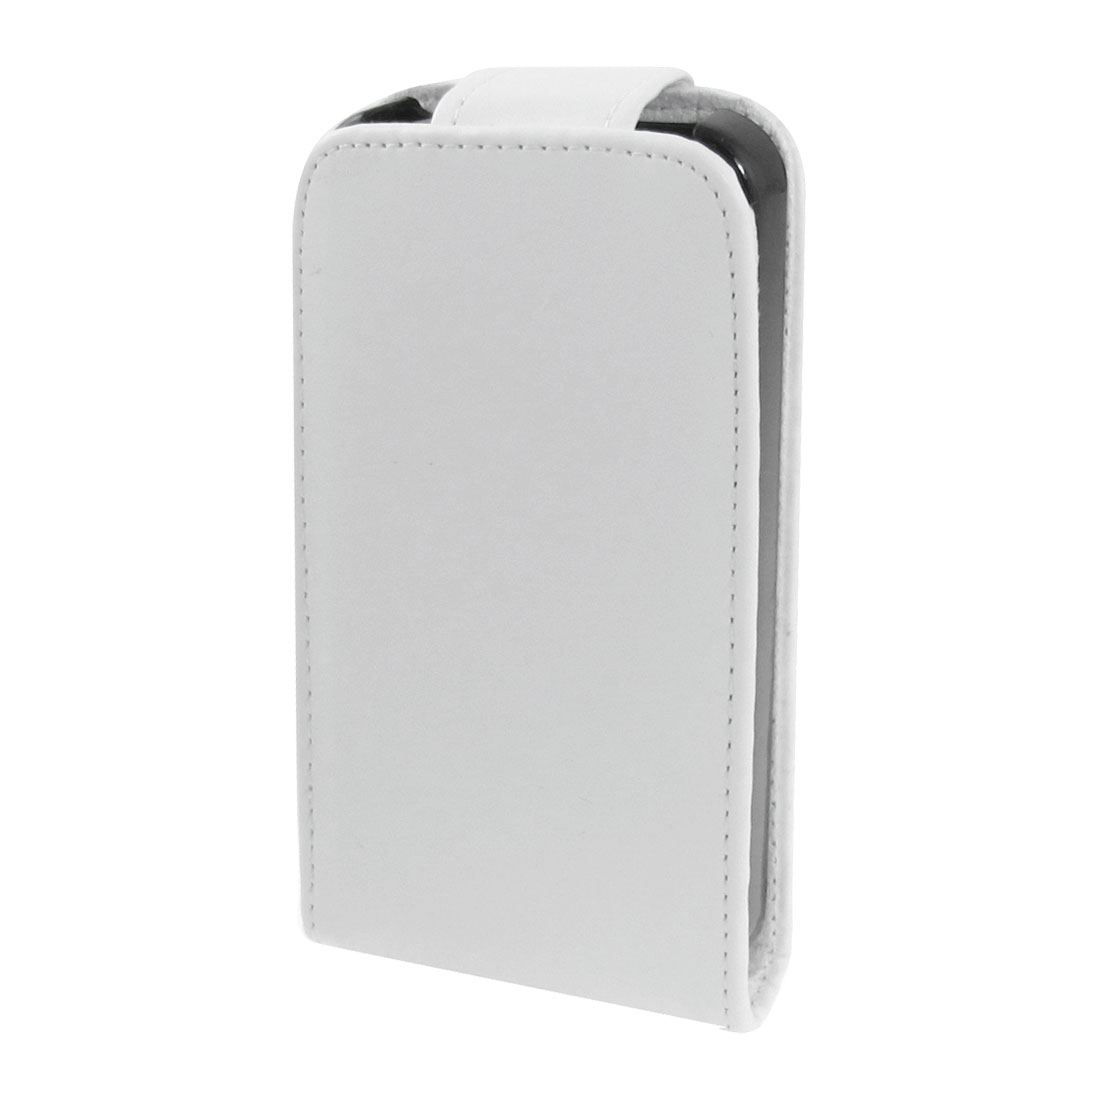 White Faux Leather Vertical Pouch Clip Holder for iPhone 4 4G